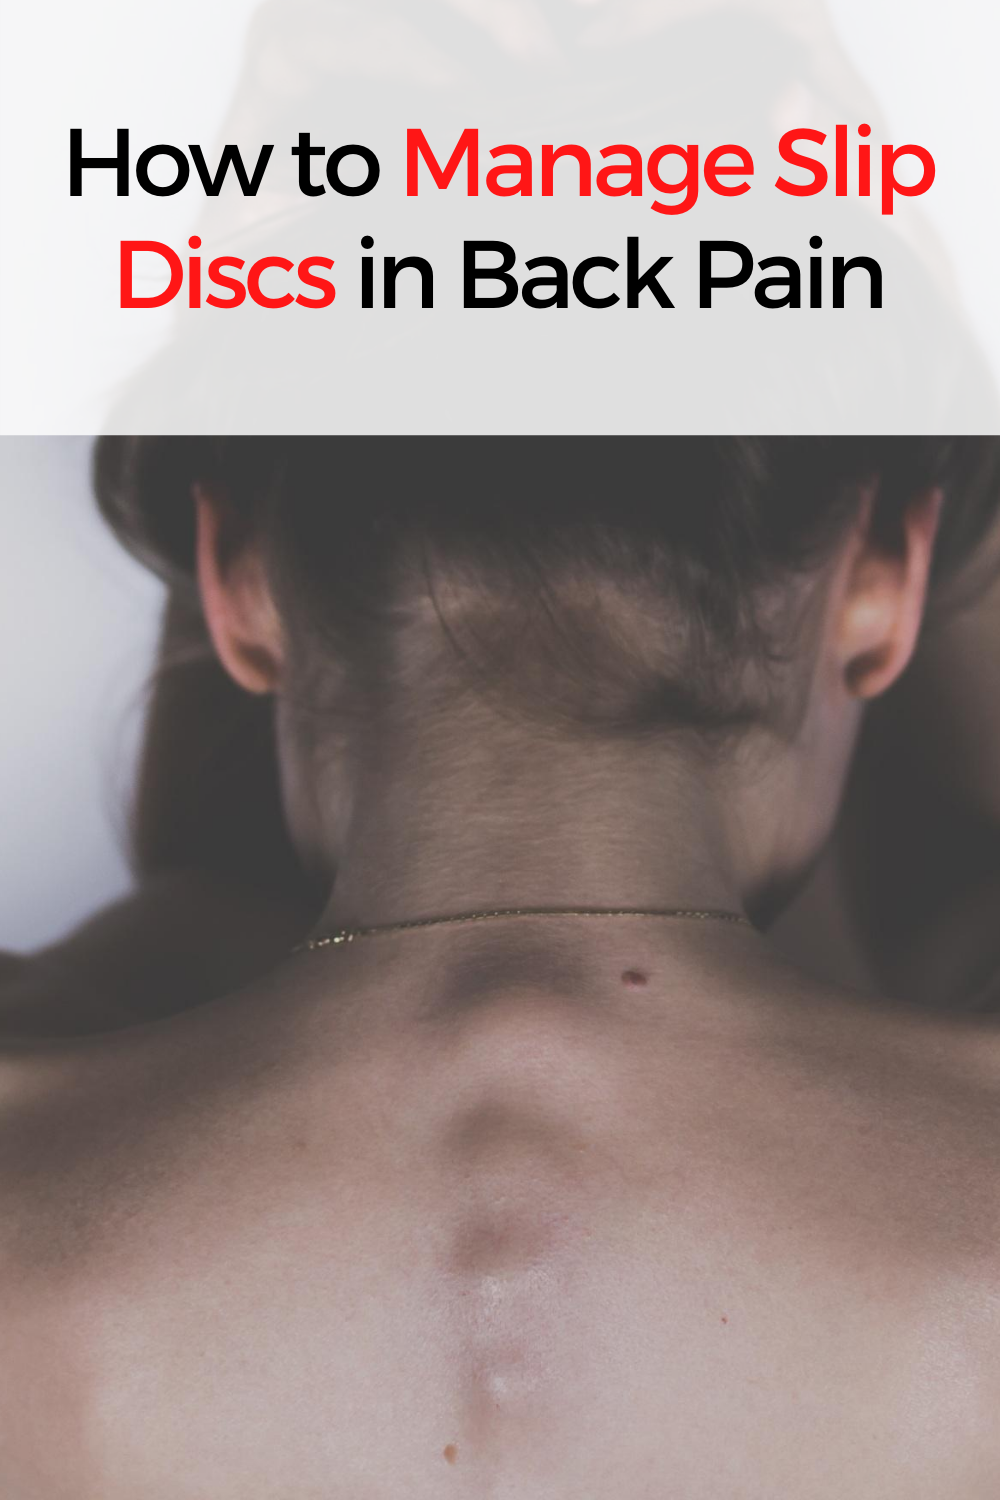 How to manage slip disc in back pain